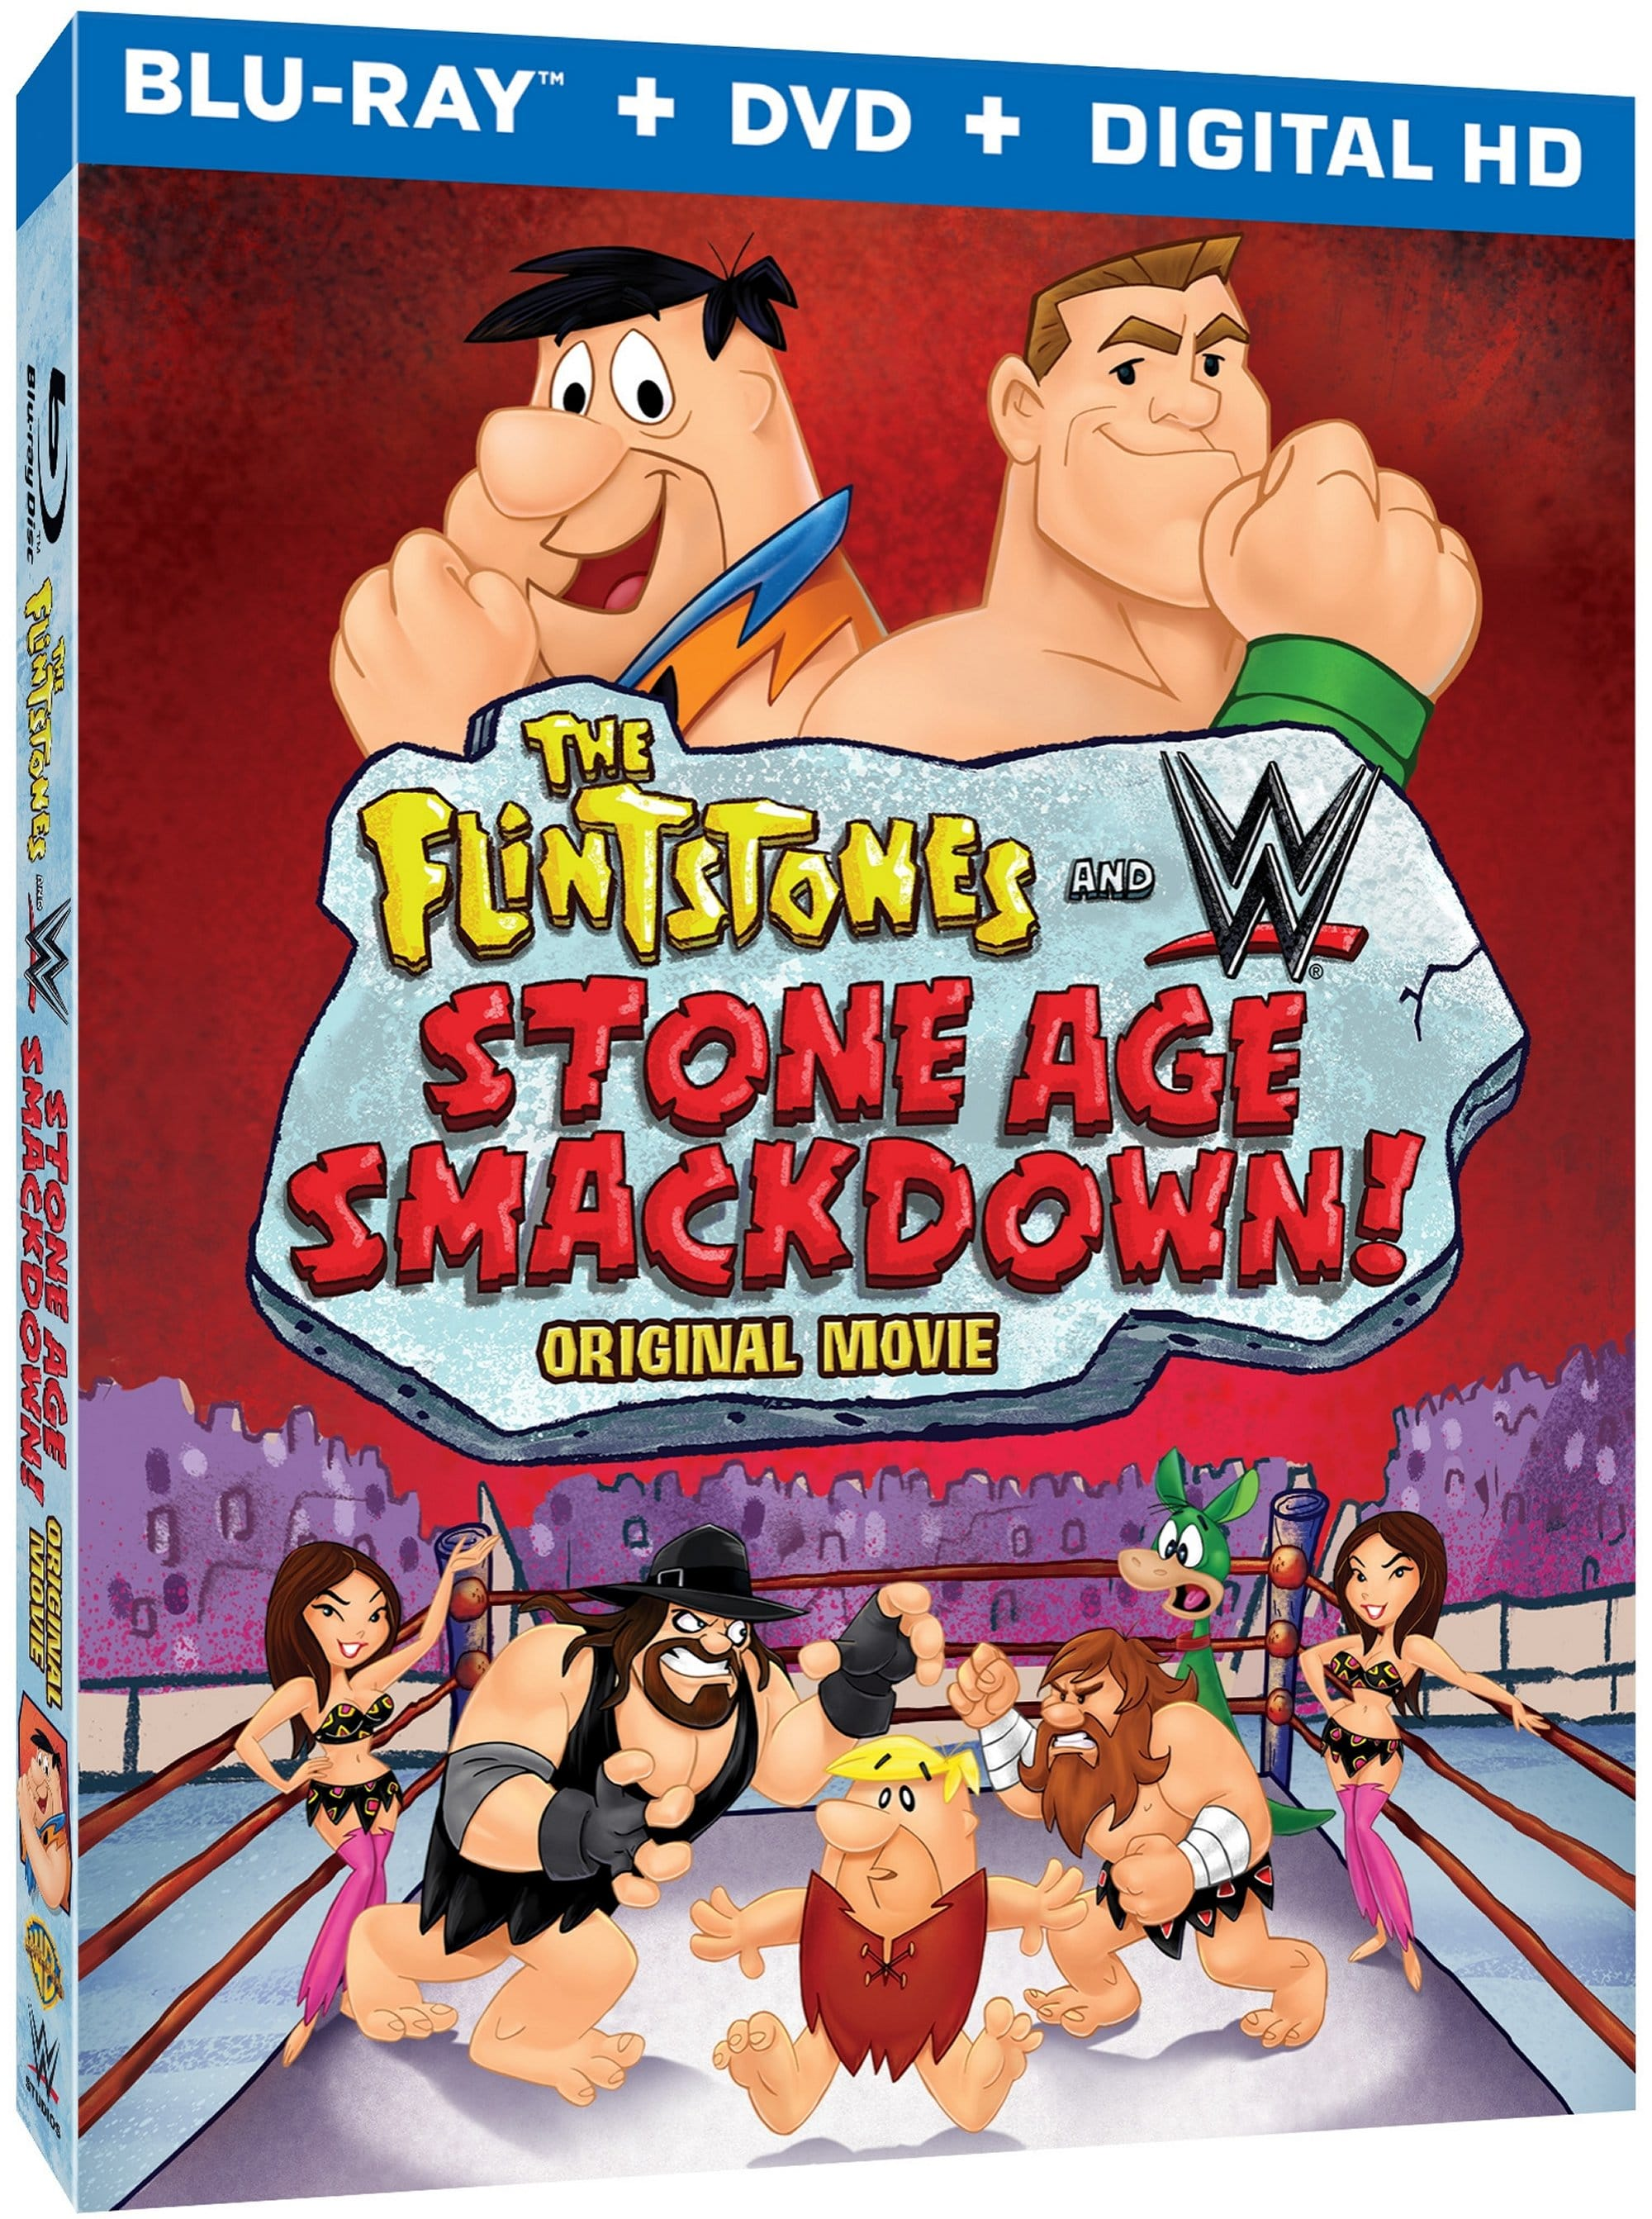 The Flintstones & WWE: Stone Age Smackdown is a Treat for the Whole Family!